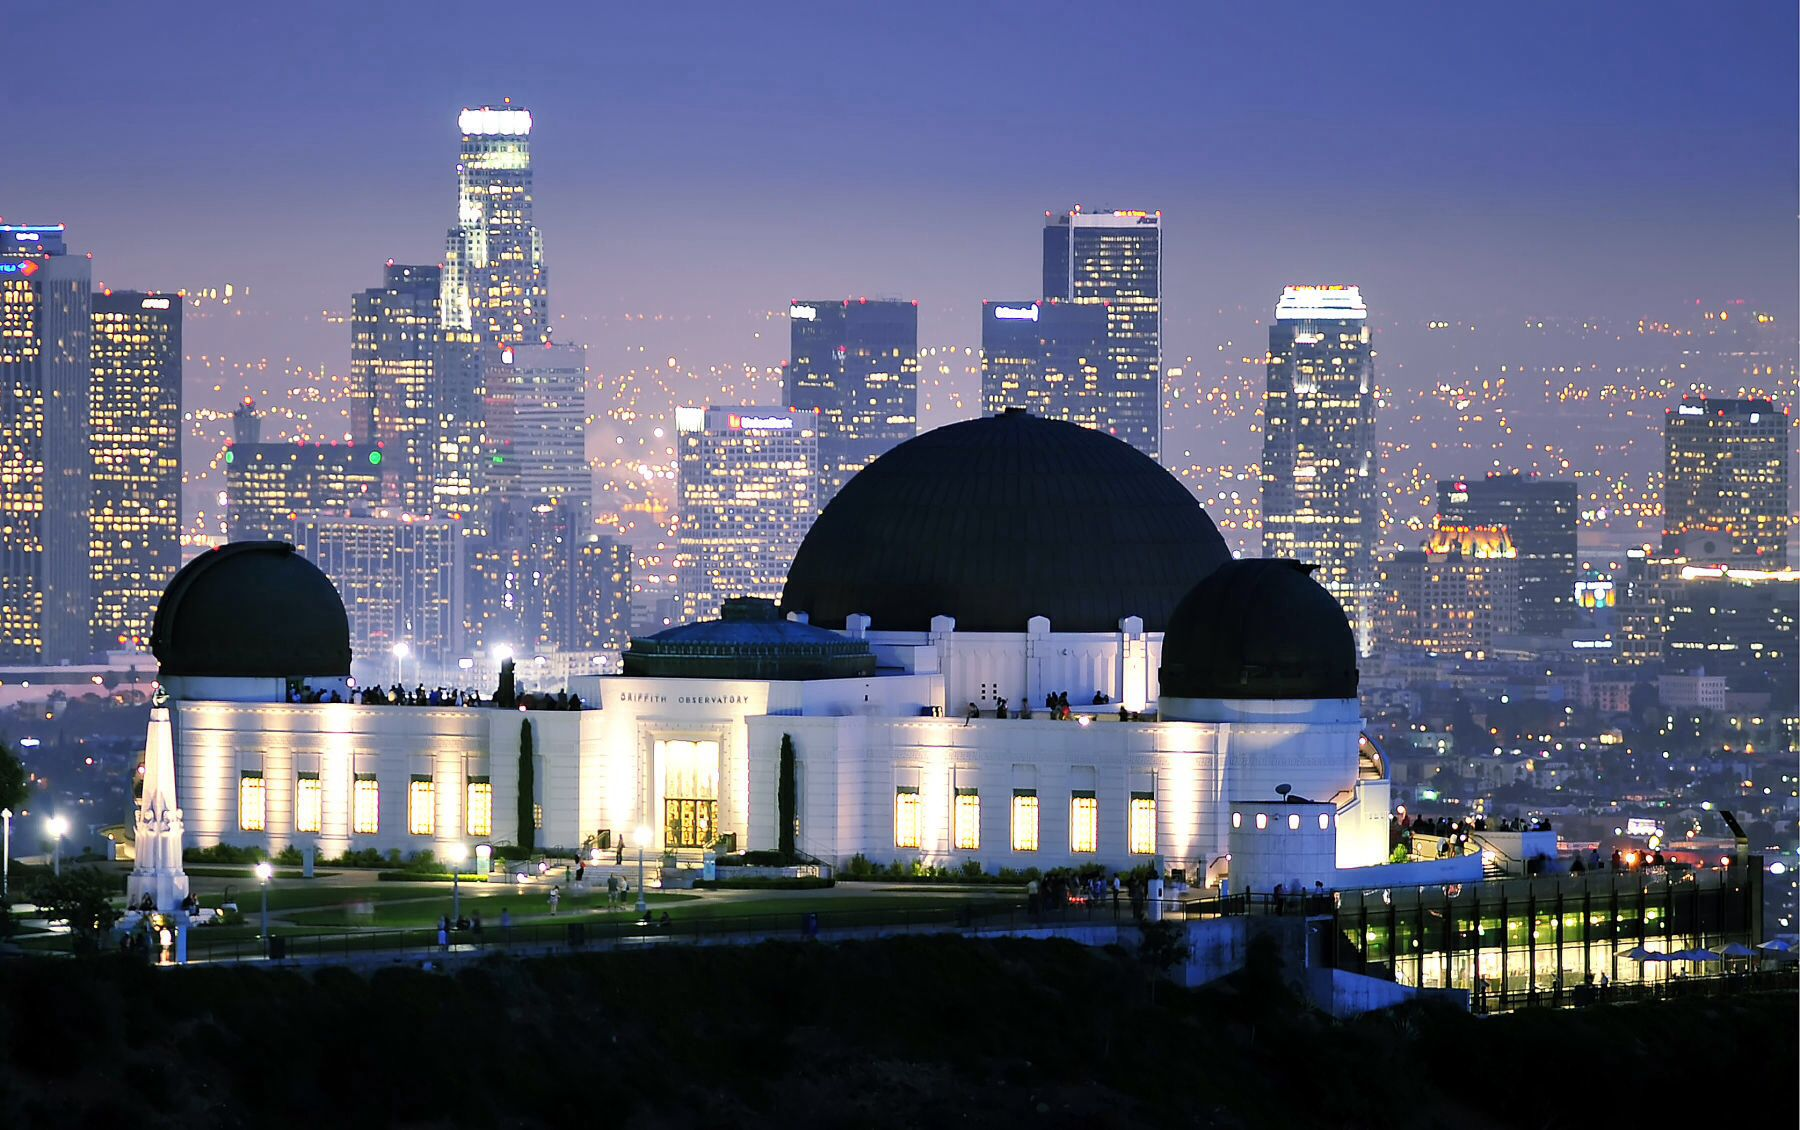 Griffith Observatory La Los Angeles Attractions Los Angeles Griffith Observatory